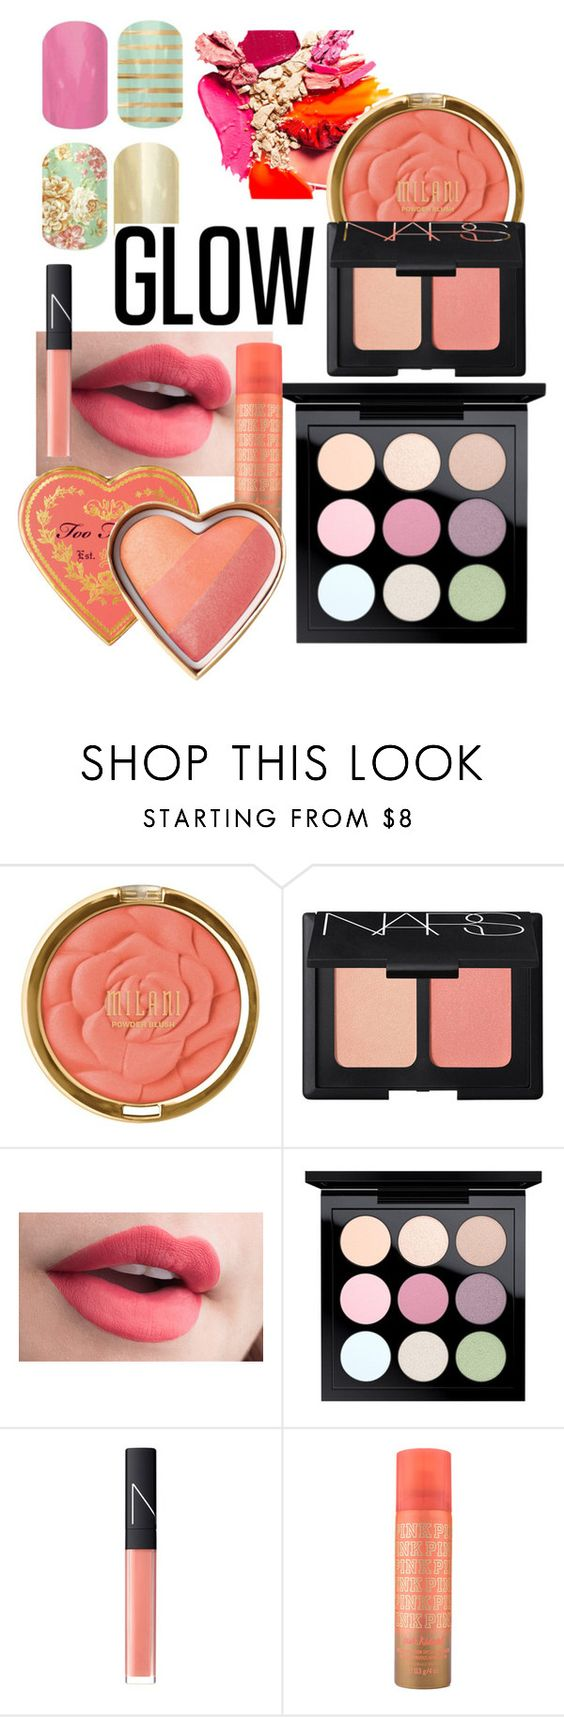 """Spring has Sprung"" by heather-harmon-i ❤ liked on Polyvore featuring beauty, Milani, NARS Cosmetics, MAC Cosmetics and springglow"